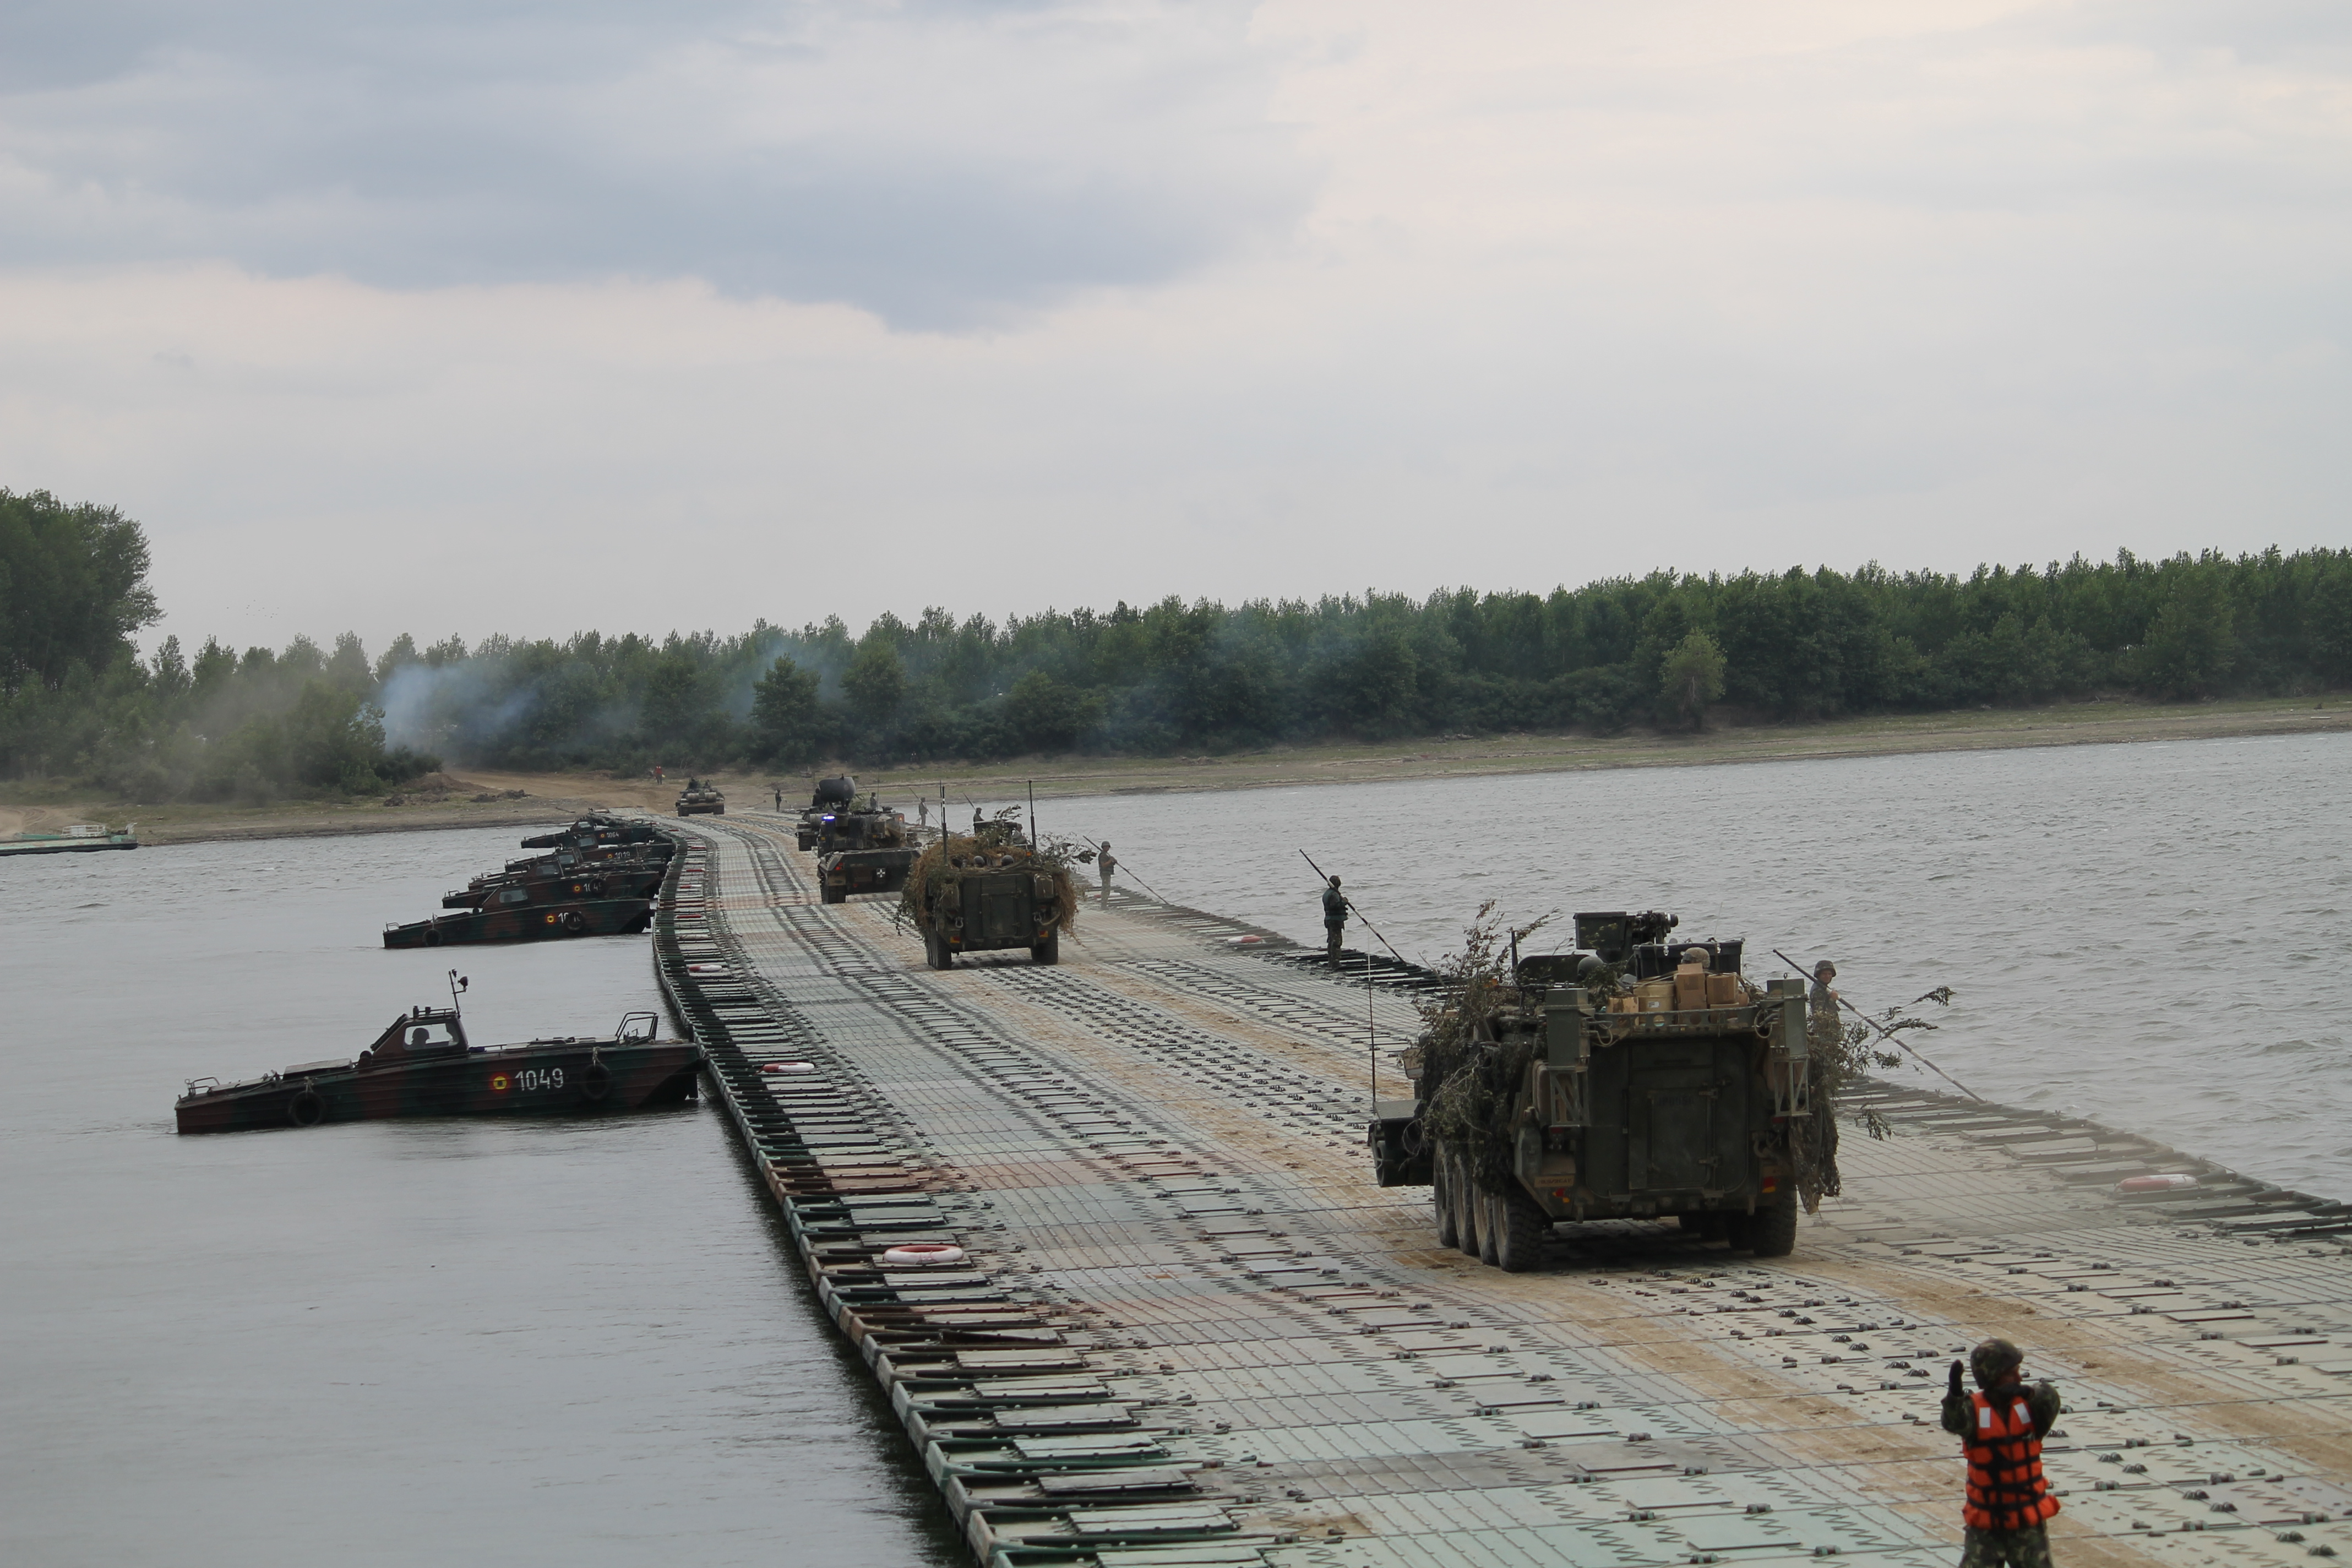 U.S. Strykers move slowly across the bridge to mark the end of the river crossing exercise. The U.S. Strykers of the 2nd Cavalry Regiment are often the vehicles of choice during bridging and river crossing exercises in Europe. U.S. Strykers crossed a bridge constructed using M3 amphibious vehicles In Chelmno, Poland, during the country's major military exercise Anakonda 2016 in June, for example. (Jen Judson/Staff)